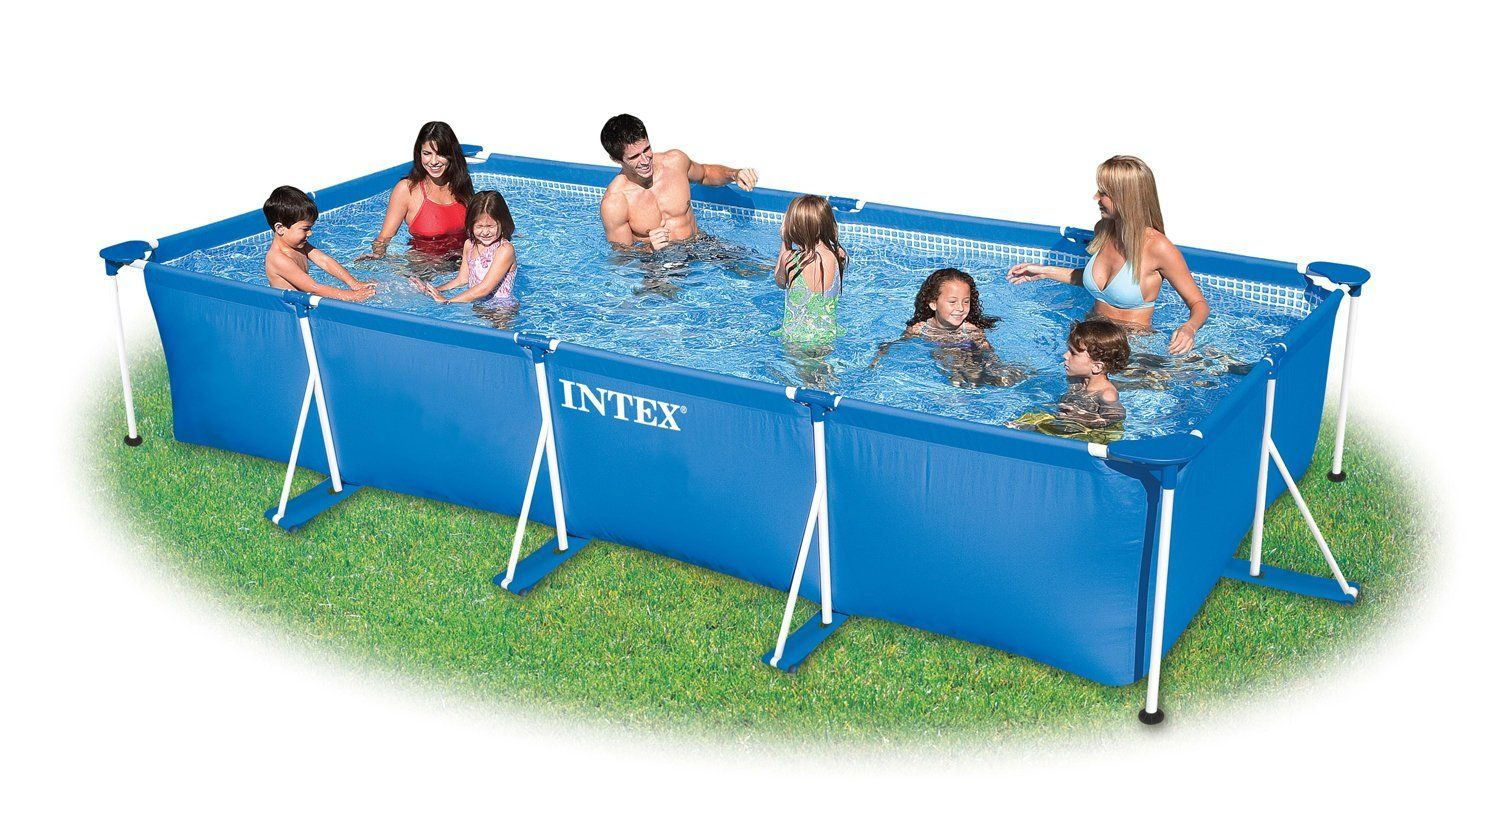 Intex Small Family Frame Pool 4.5m X 2.2m X 0.84m #28273: Amazon.